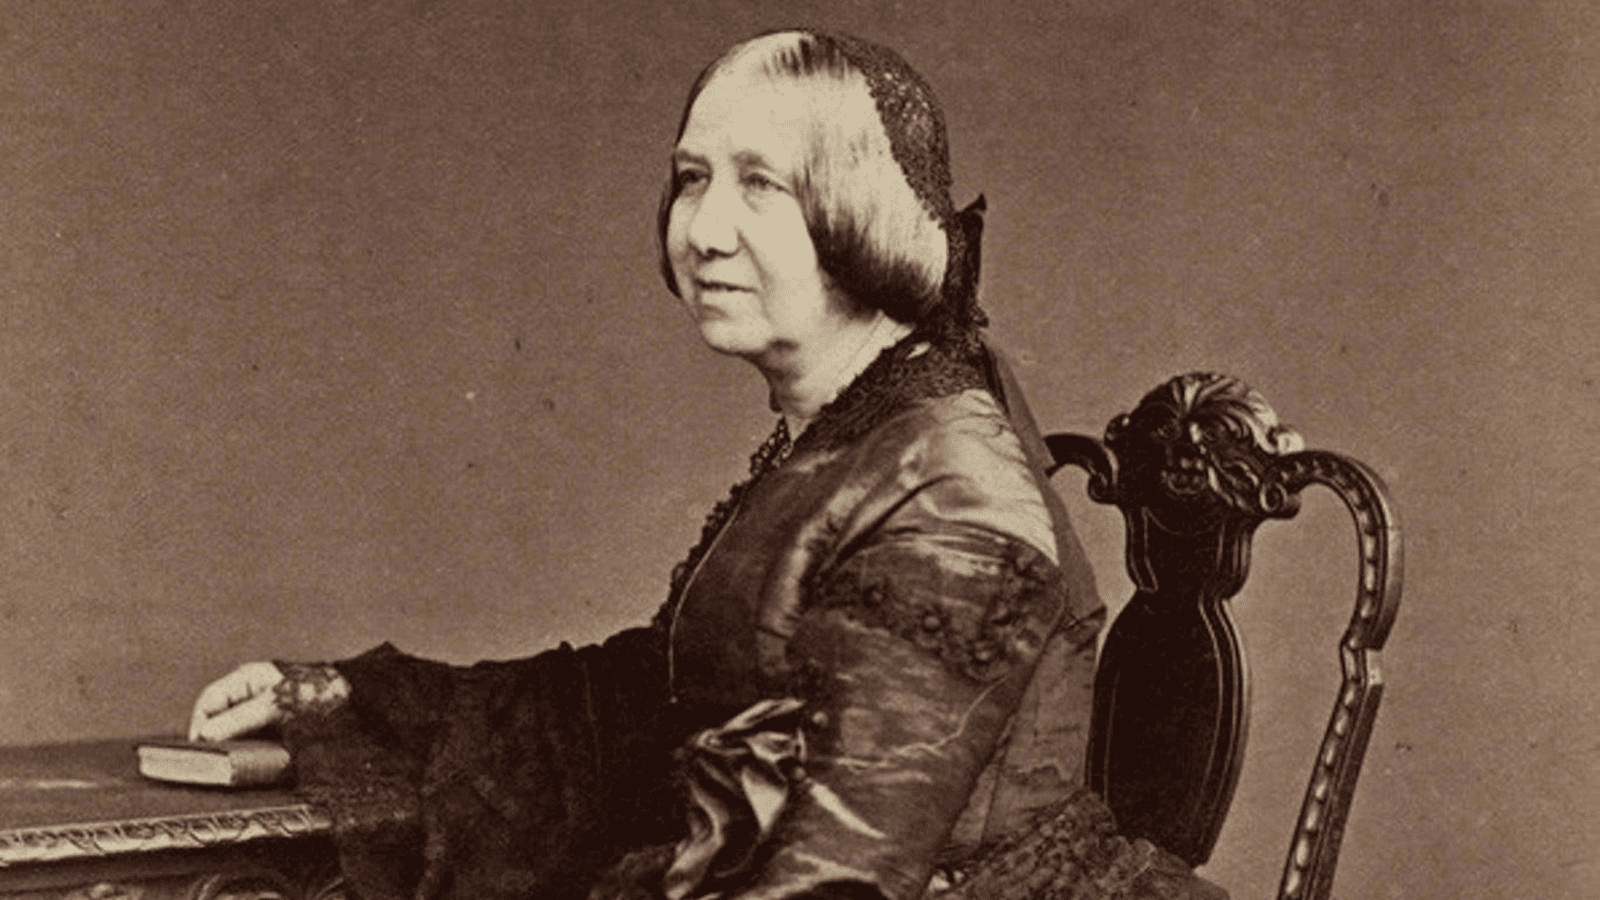 The missing picture of Charles Dickens